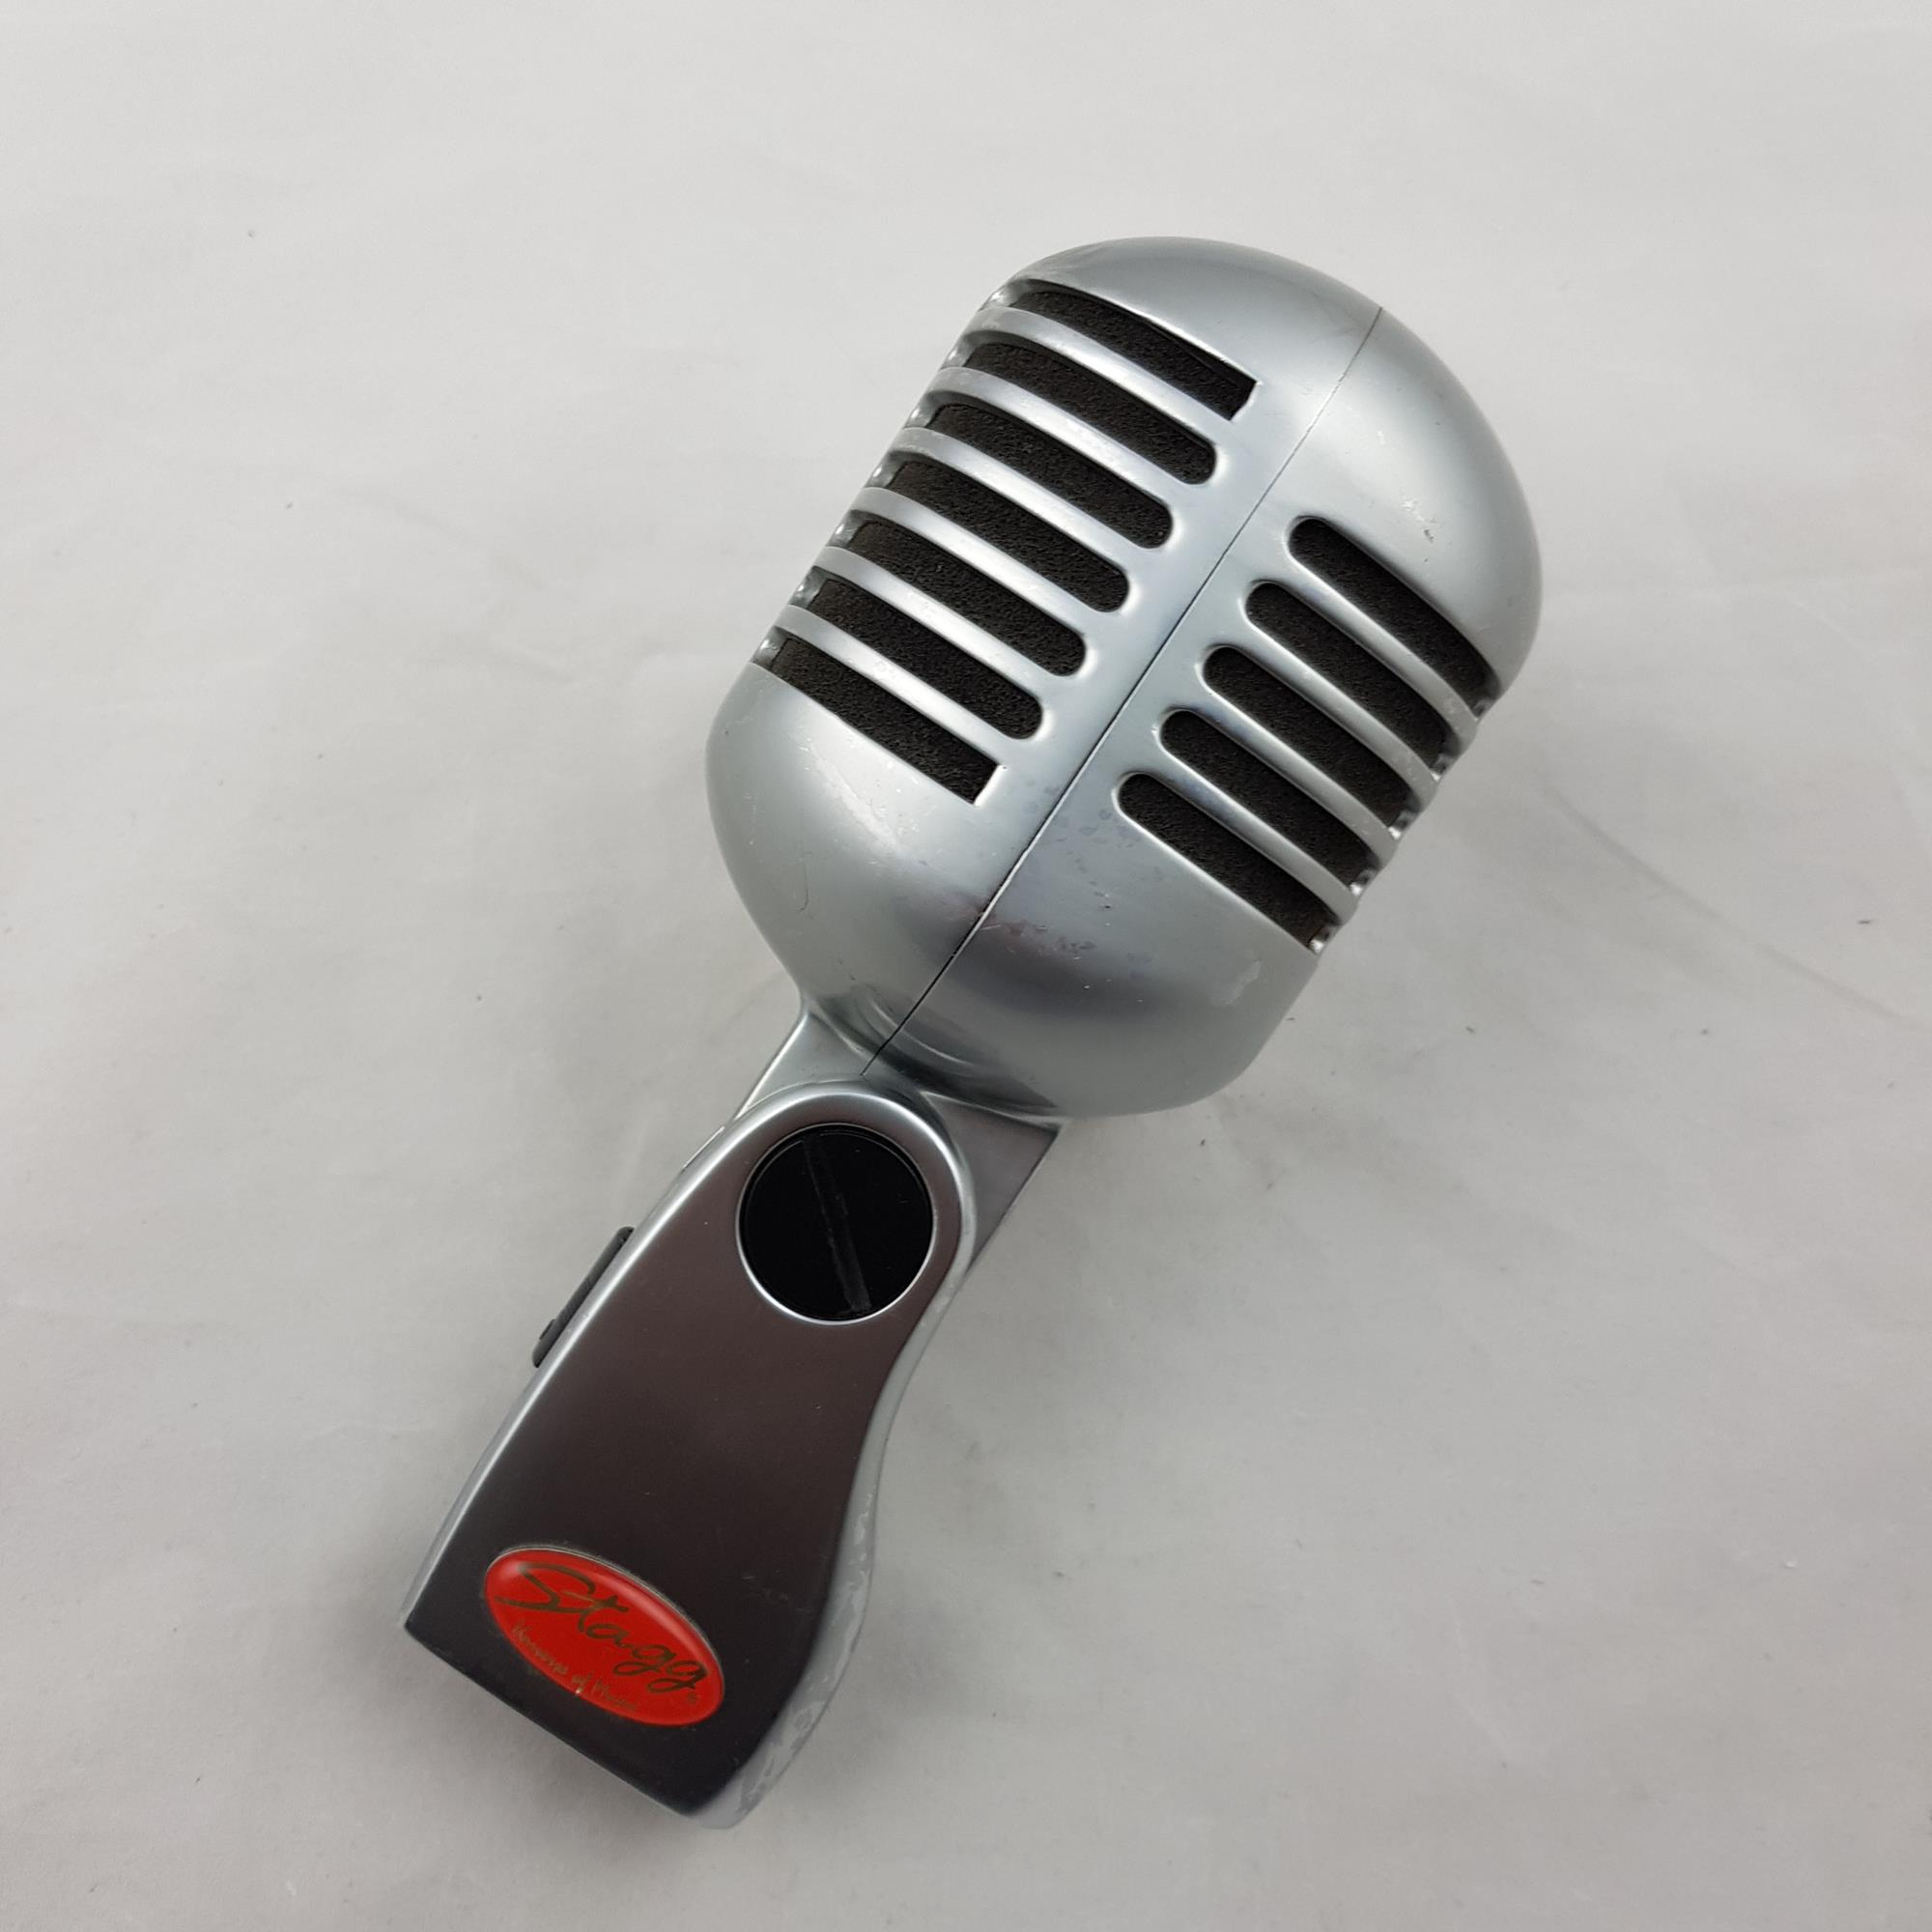 STAGG-SDM007-50-VINTAGE-STYLE-VOICE-MICROPHONE-sku-1602871402190